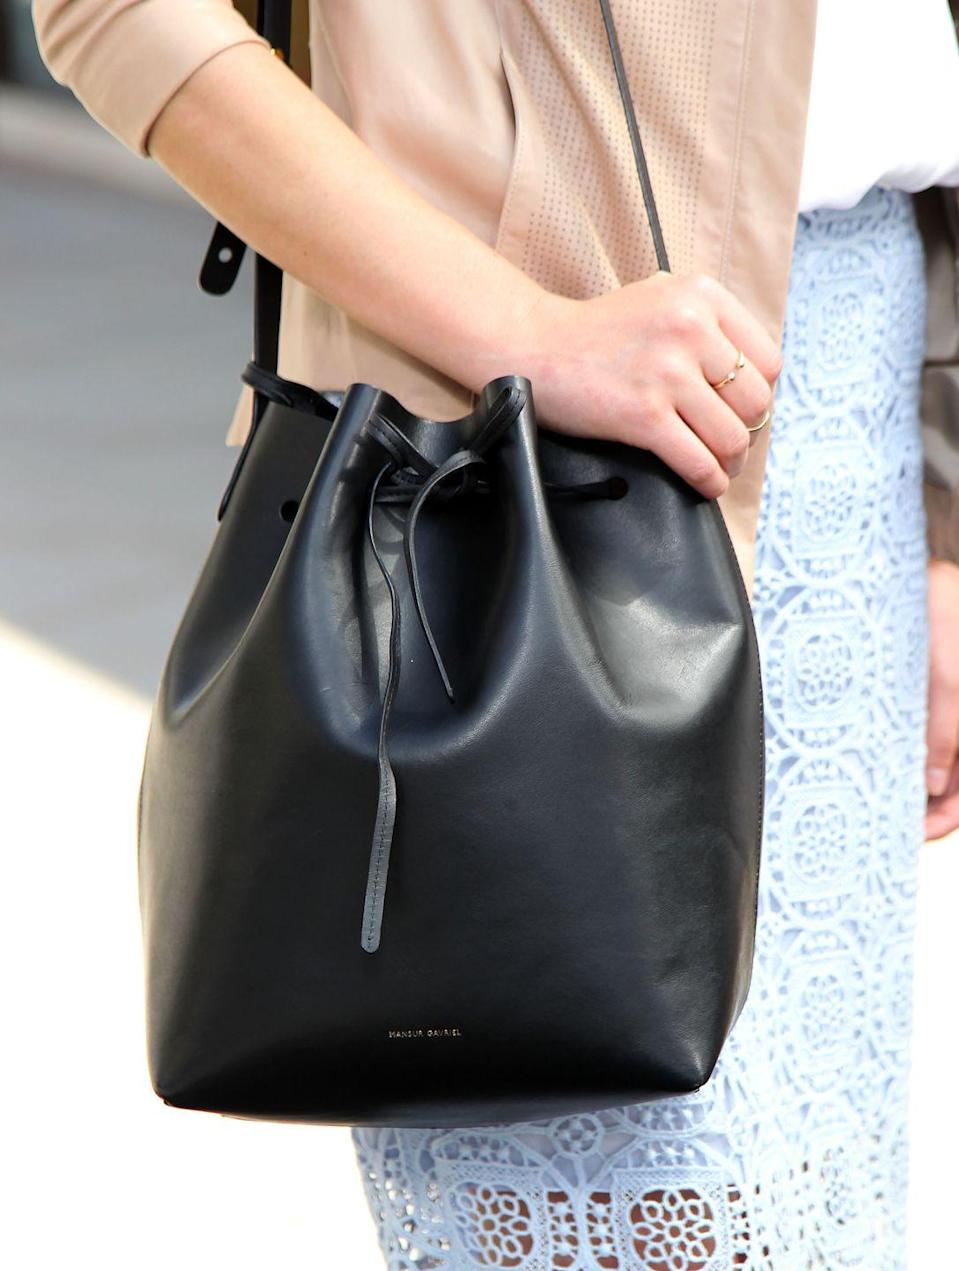 <p>Mansur Gavriel launched in 2012, and the label's bucket bag reached cult status by the following year. The leather material and drawstring closure gave the pieces a contemporary and chic aesthetic that everyone wanted to get their hands on. </p>